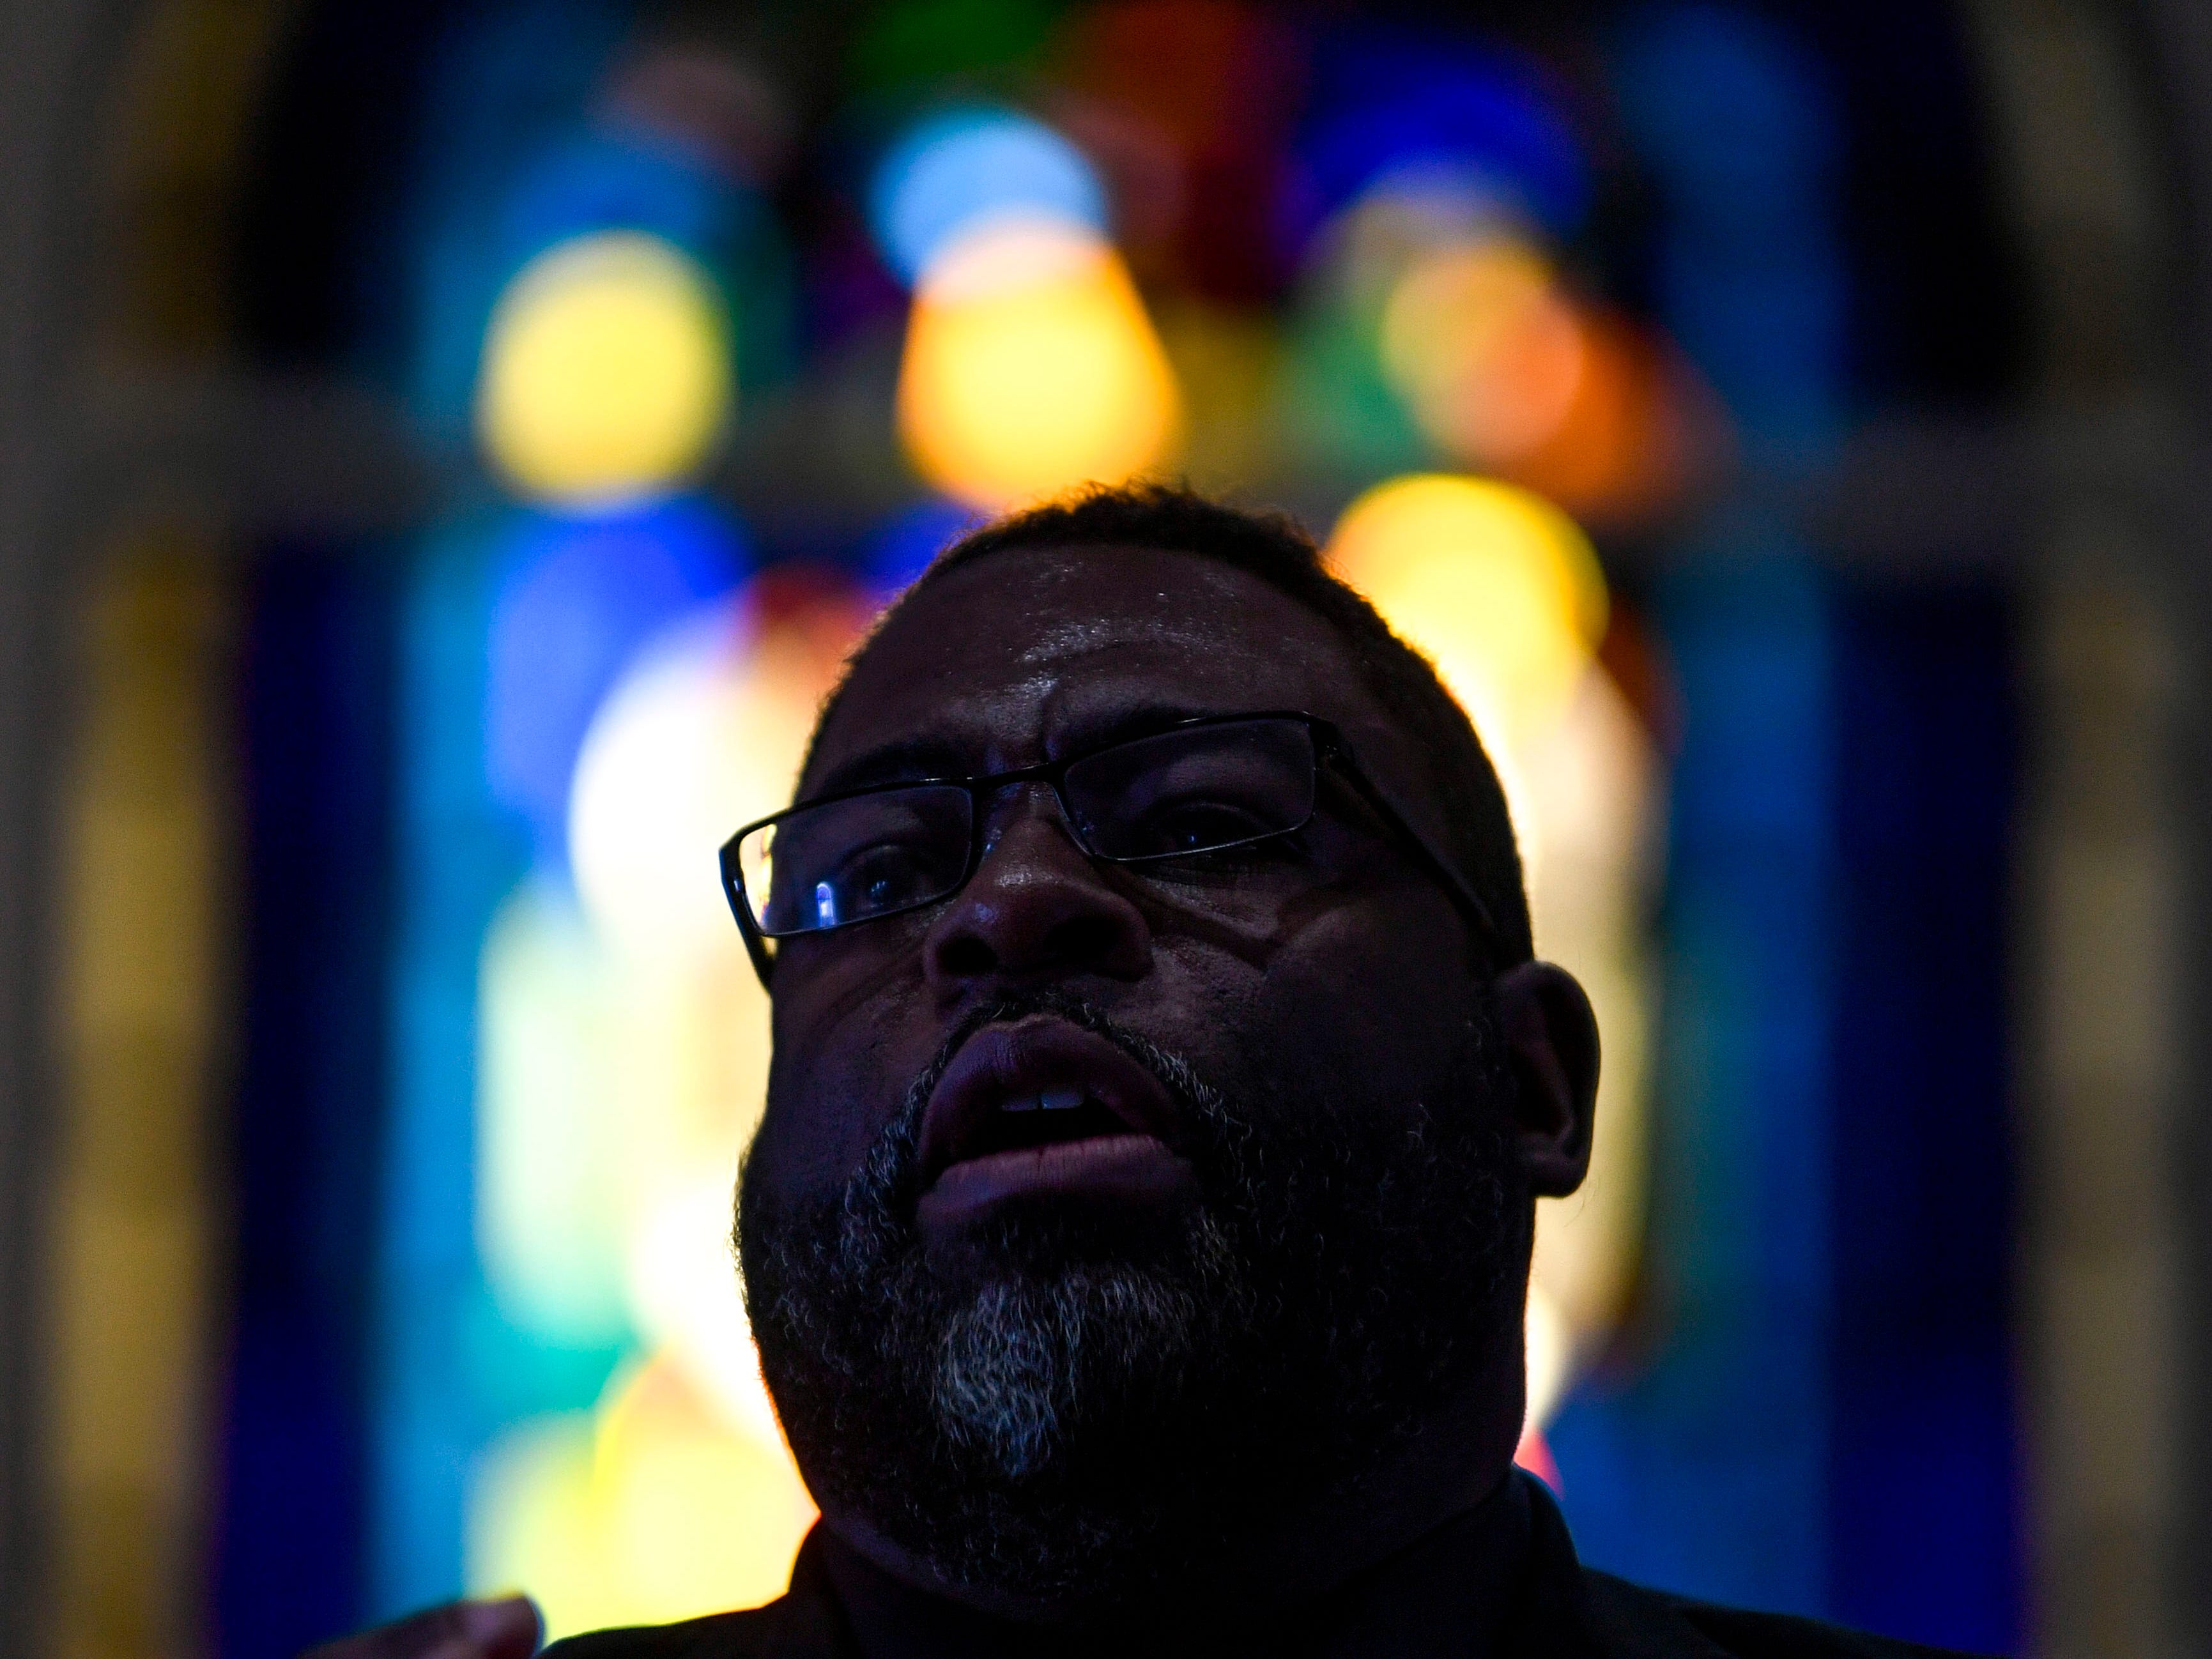 Rev. Cleavon Meabon speaks to the crowd during a service held for Martin Luther King Jr. Day at Mt. Zion Baptist Church in Jackson, Tenn., on Monday, Jan. 21, 2019.